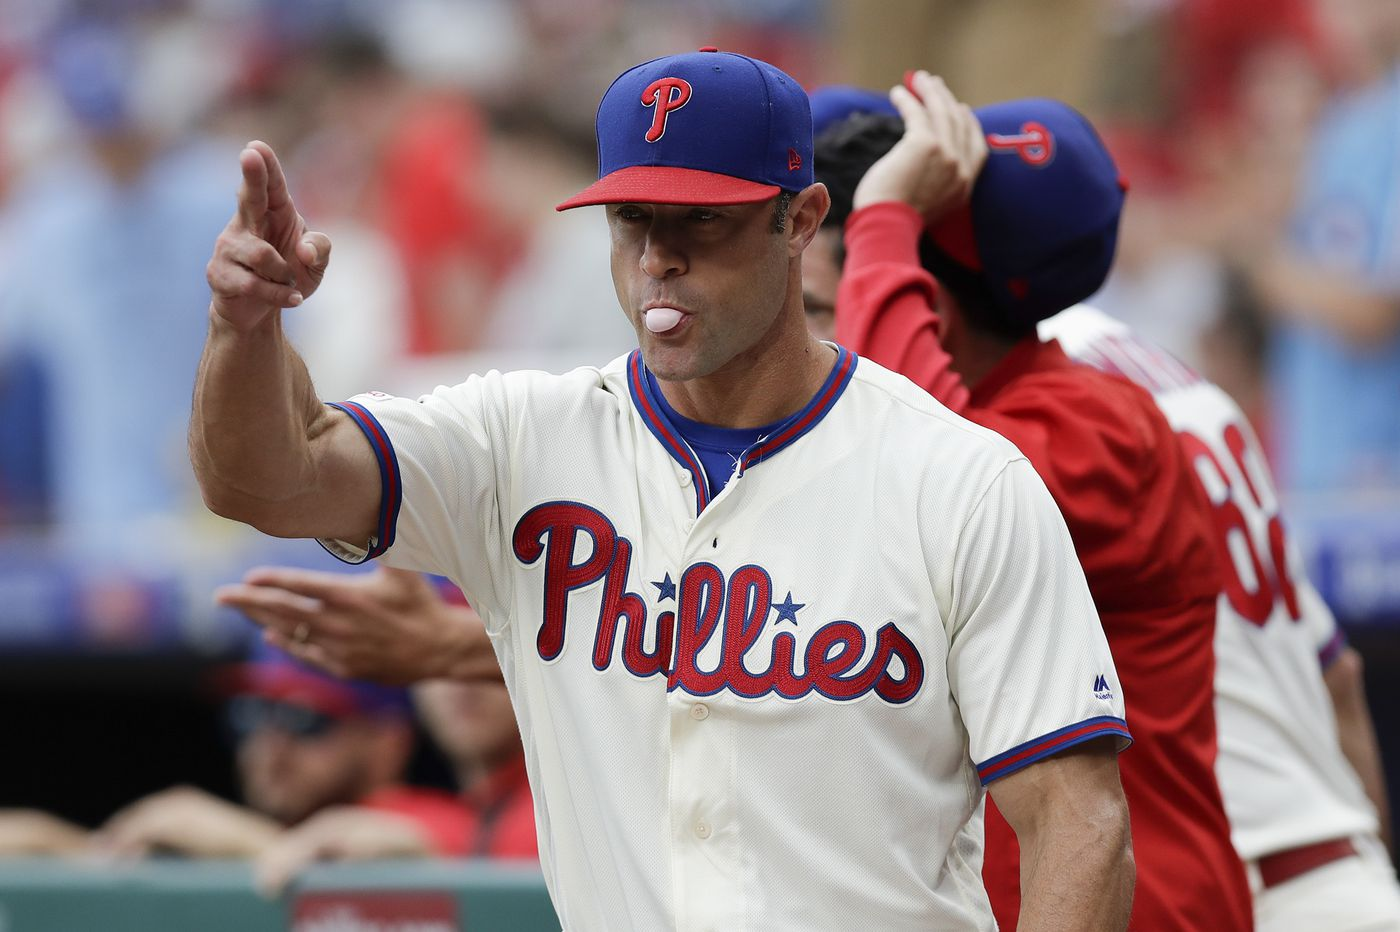 Gabe Kapler's status as Phillies manager remains unclear